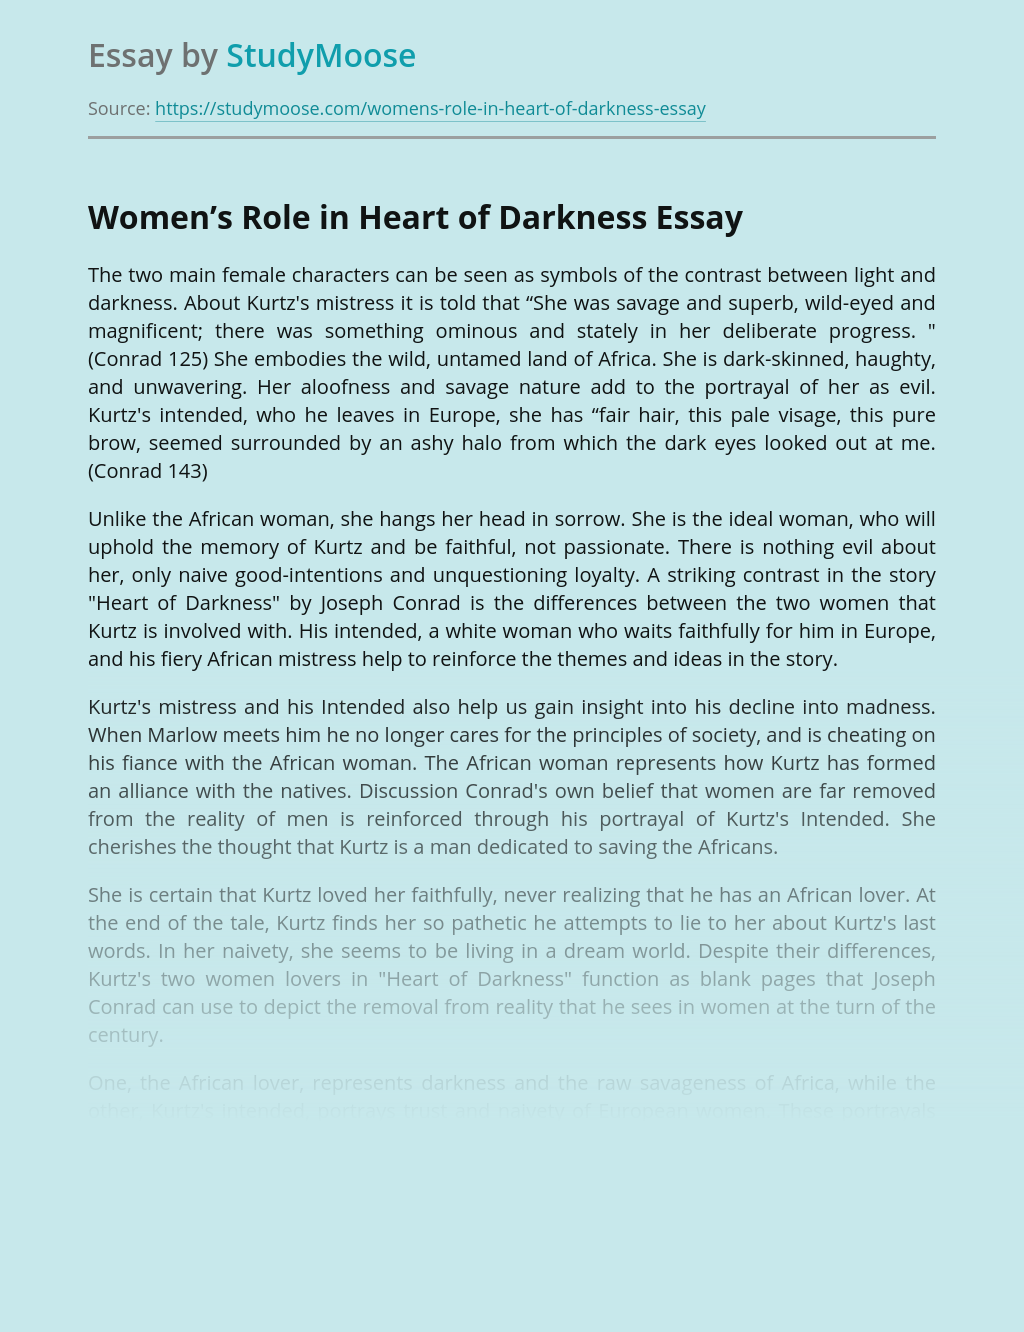 Women's Role in Heart of Darkness